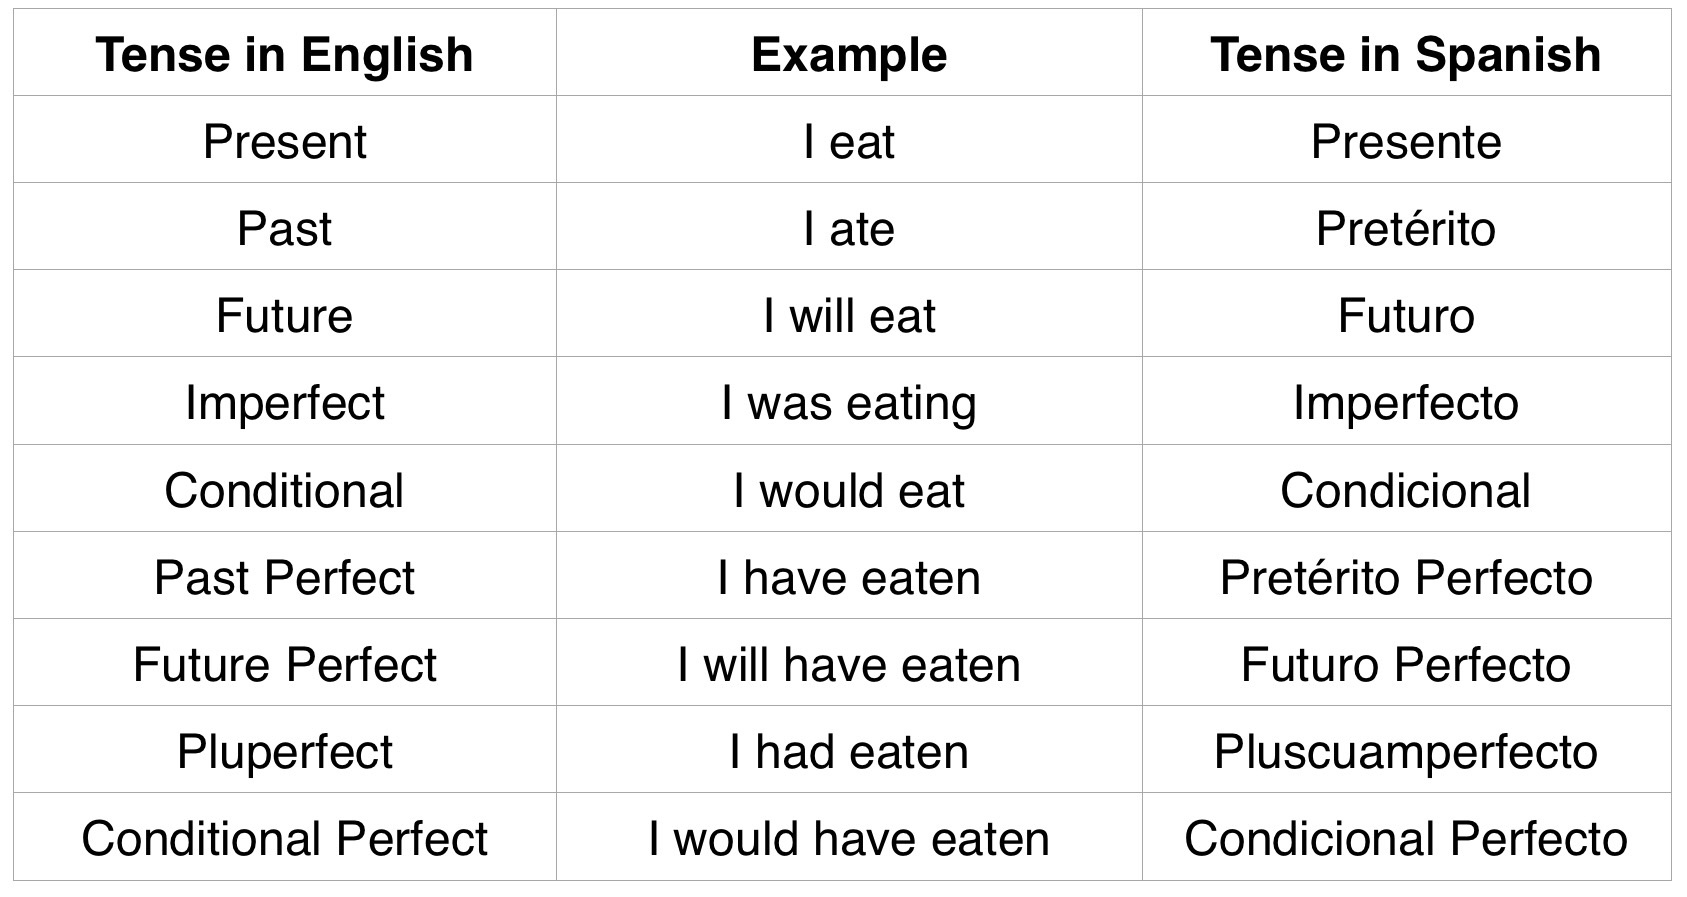 Spanish Present Tense Verb Endings Table